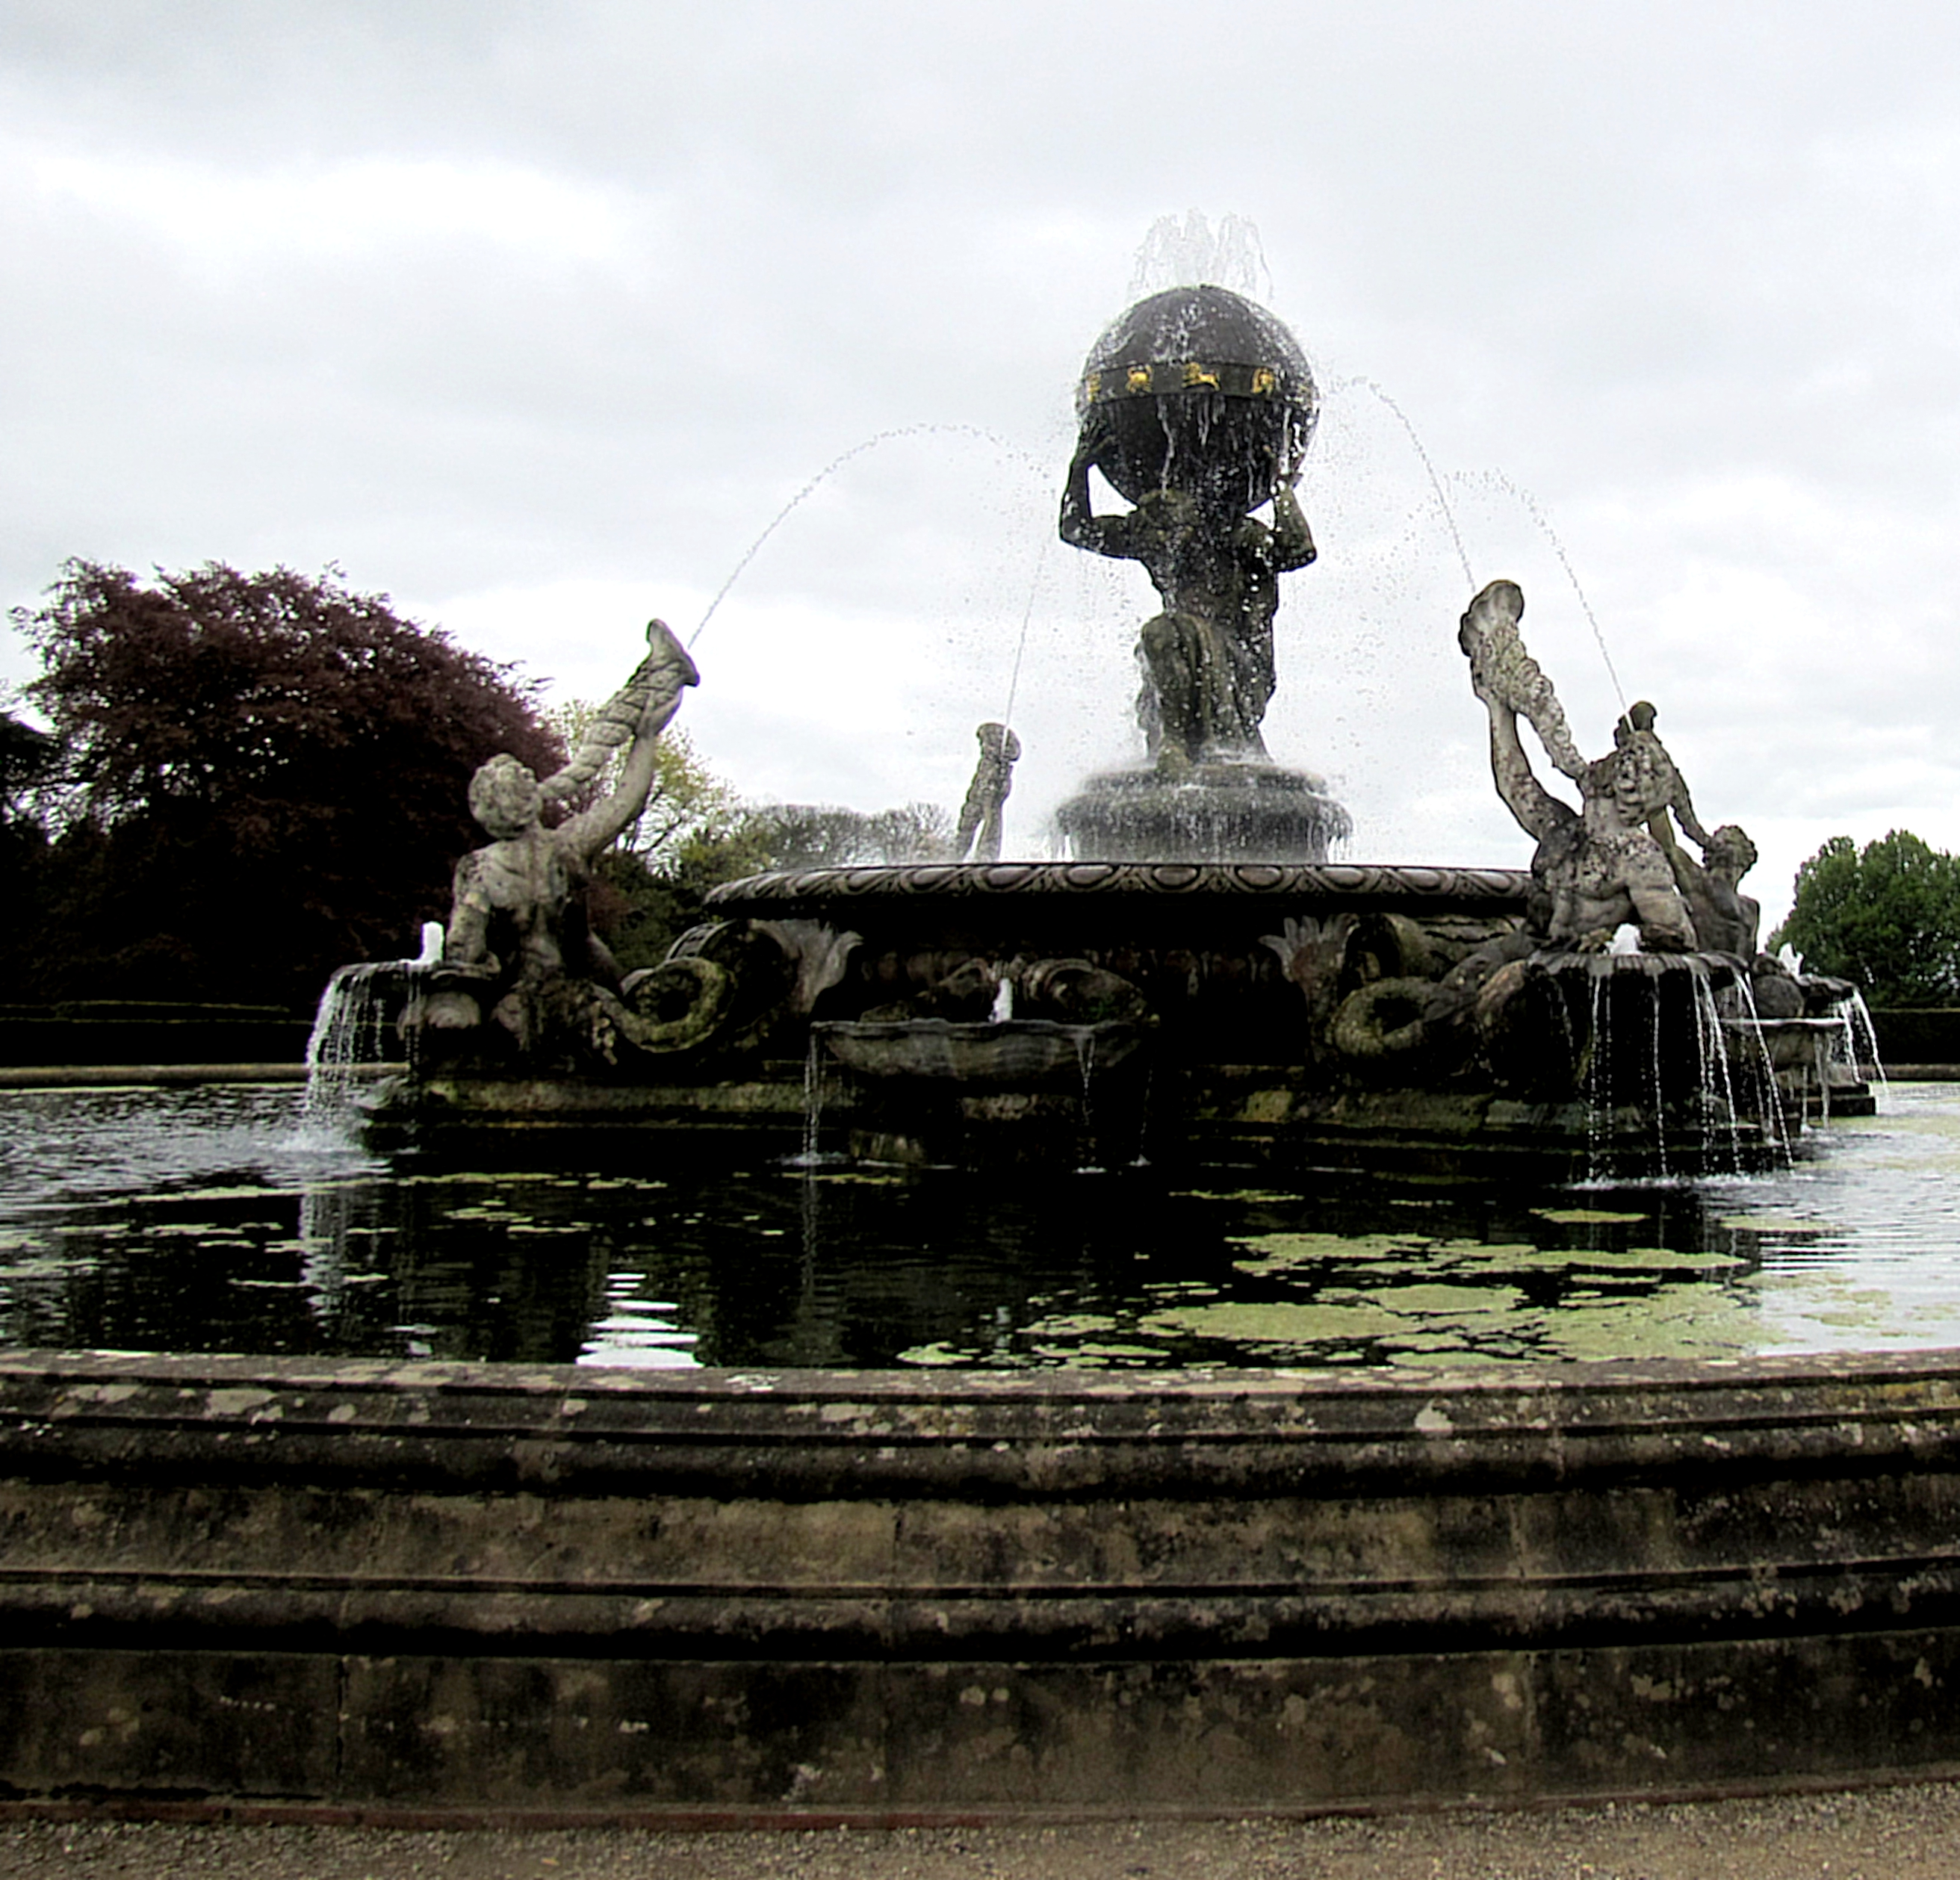 Atlas is in the centre, holding the world on his shoulders. Surrounding him are four tritons, spraying him with water. The tritons are about eight feet tall, so Atlas would be 10-11 feet tall if he were standing upright.